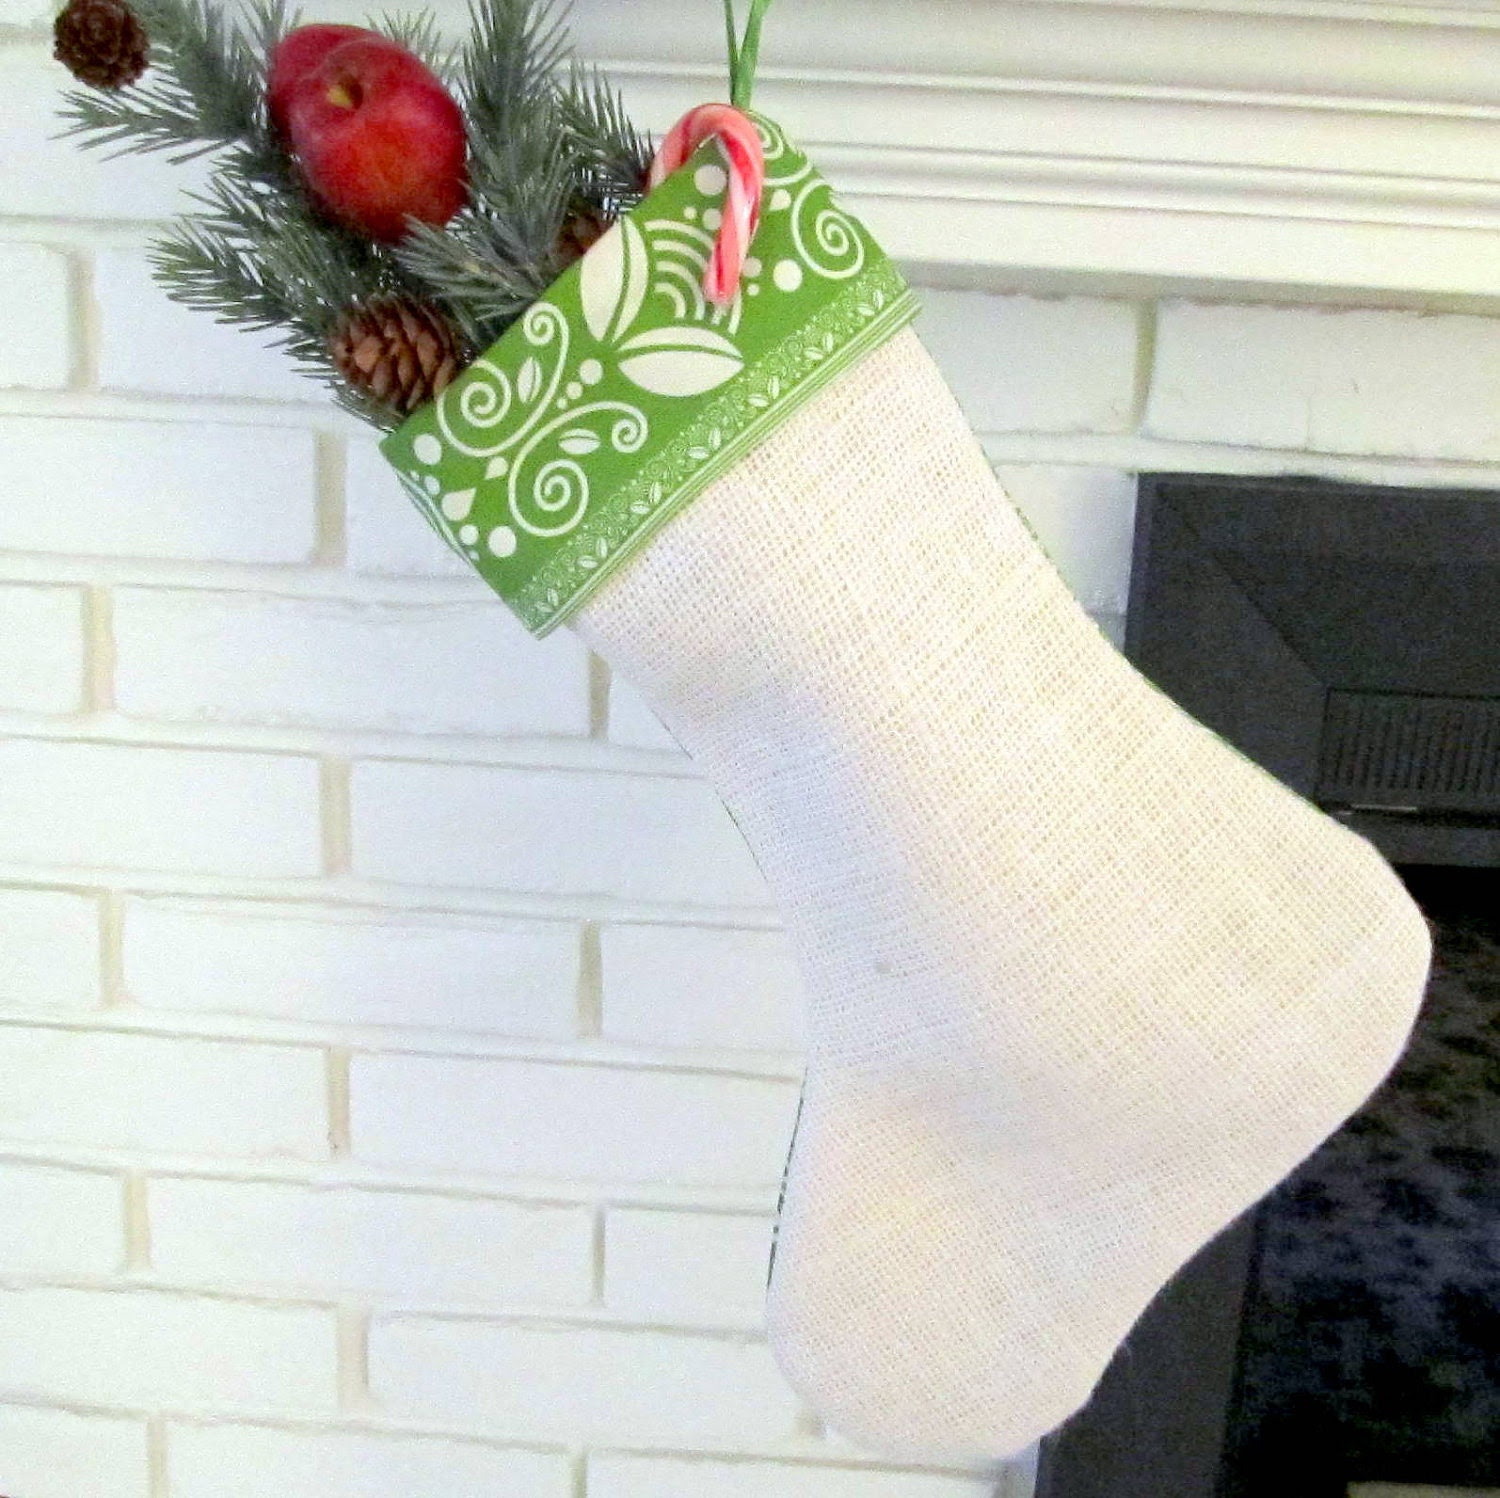 Apple Green Christmas Stocking Cuffed Ribbon Hanger Lined 16 in. long